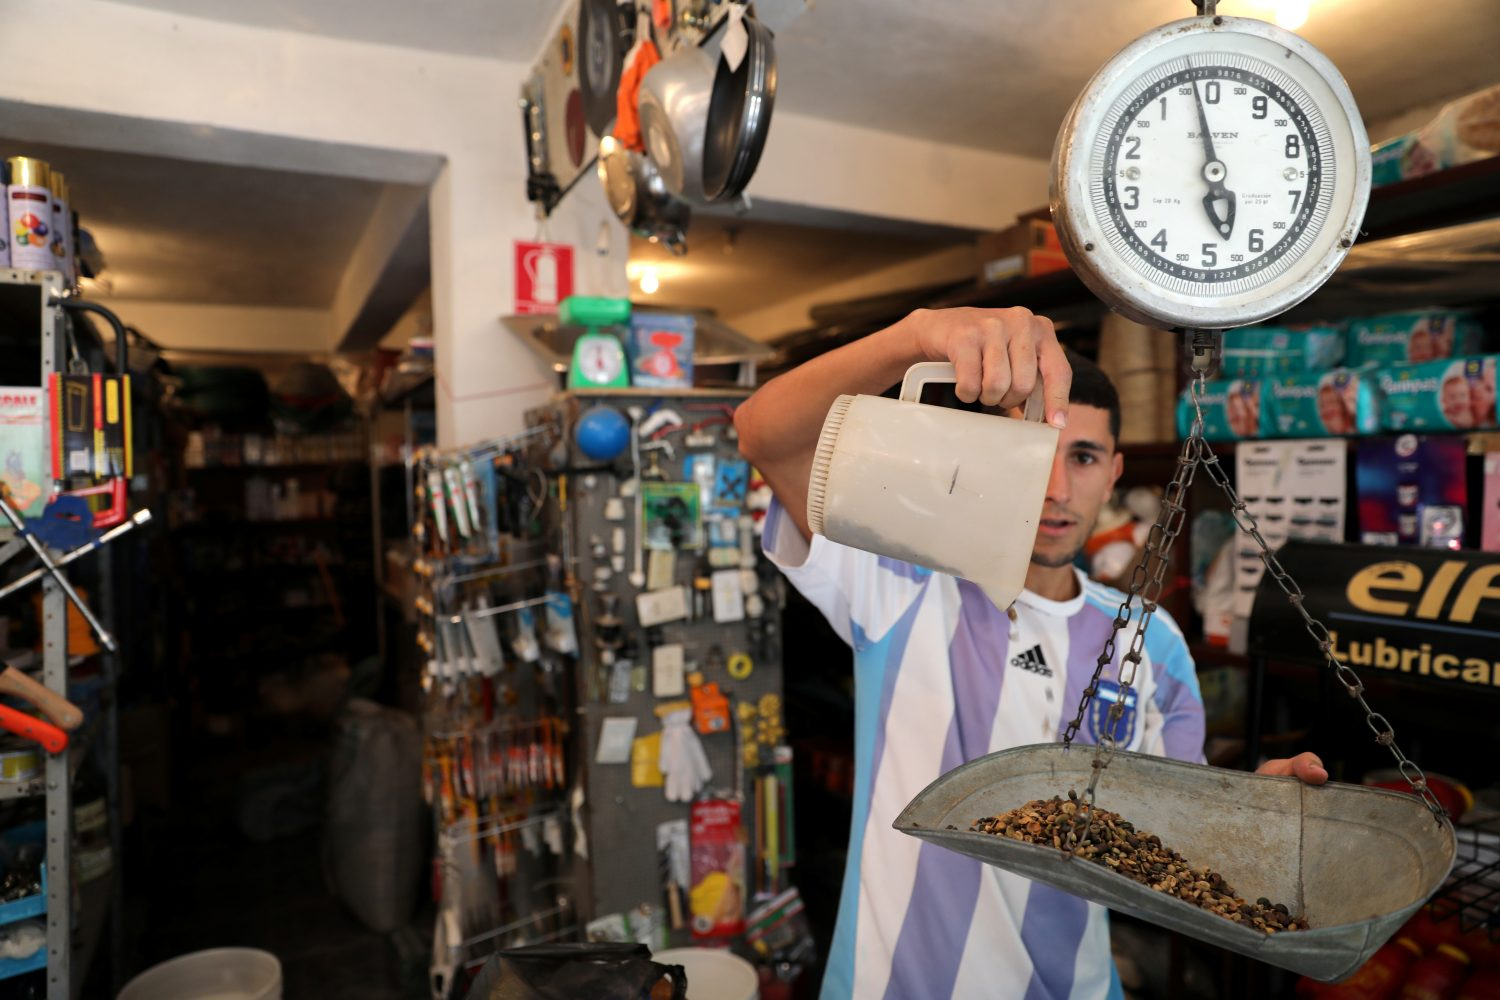 A man weighs coffee beans, given as a means of payment, in a hardware store in Guarico, Venezuela April 24, 2019. Picture taken April 24, 2019. REUTERS/Manaure Quintero NO RESALES. NO ARCHIVES.